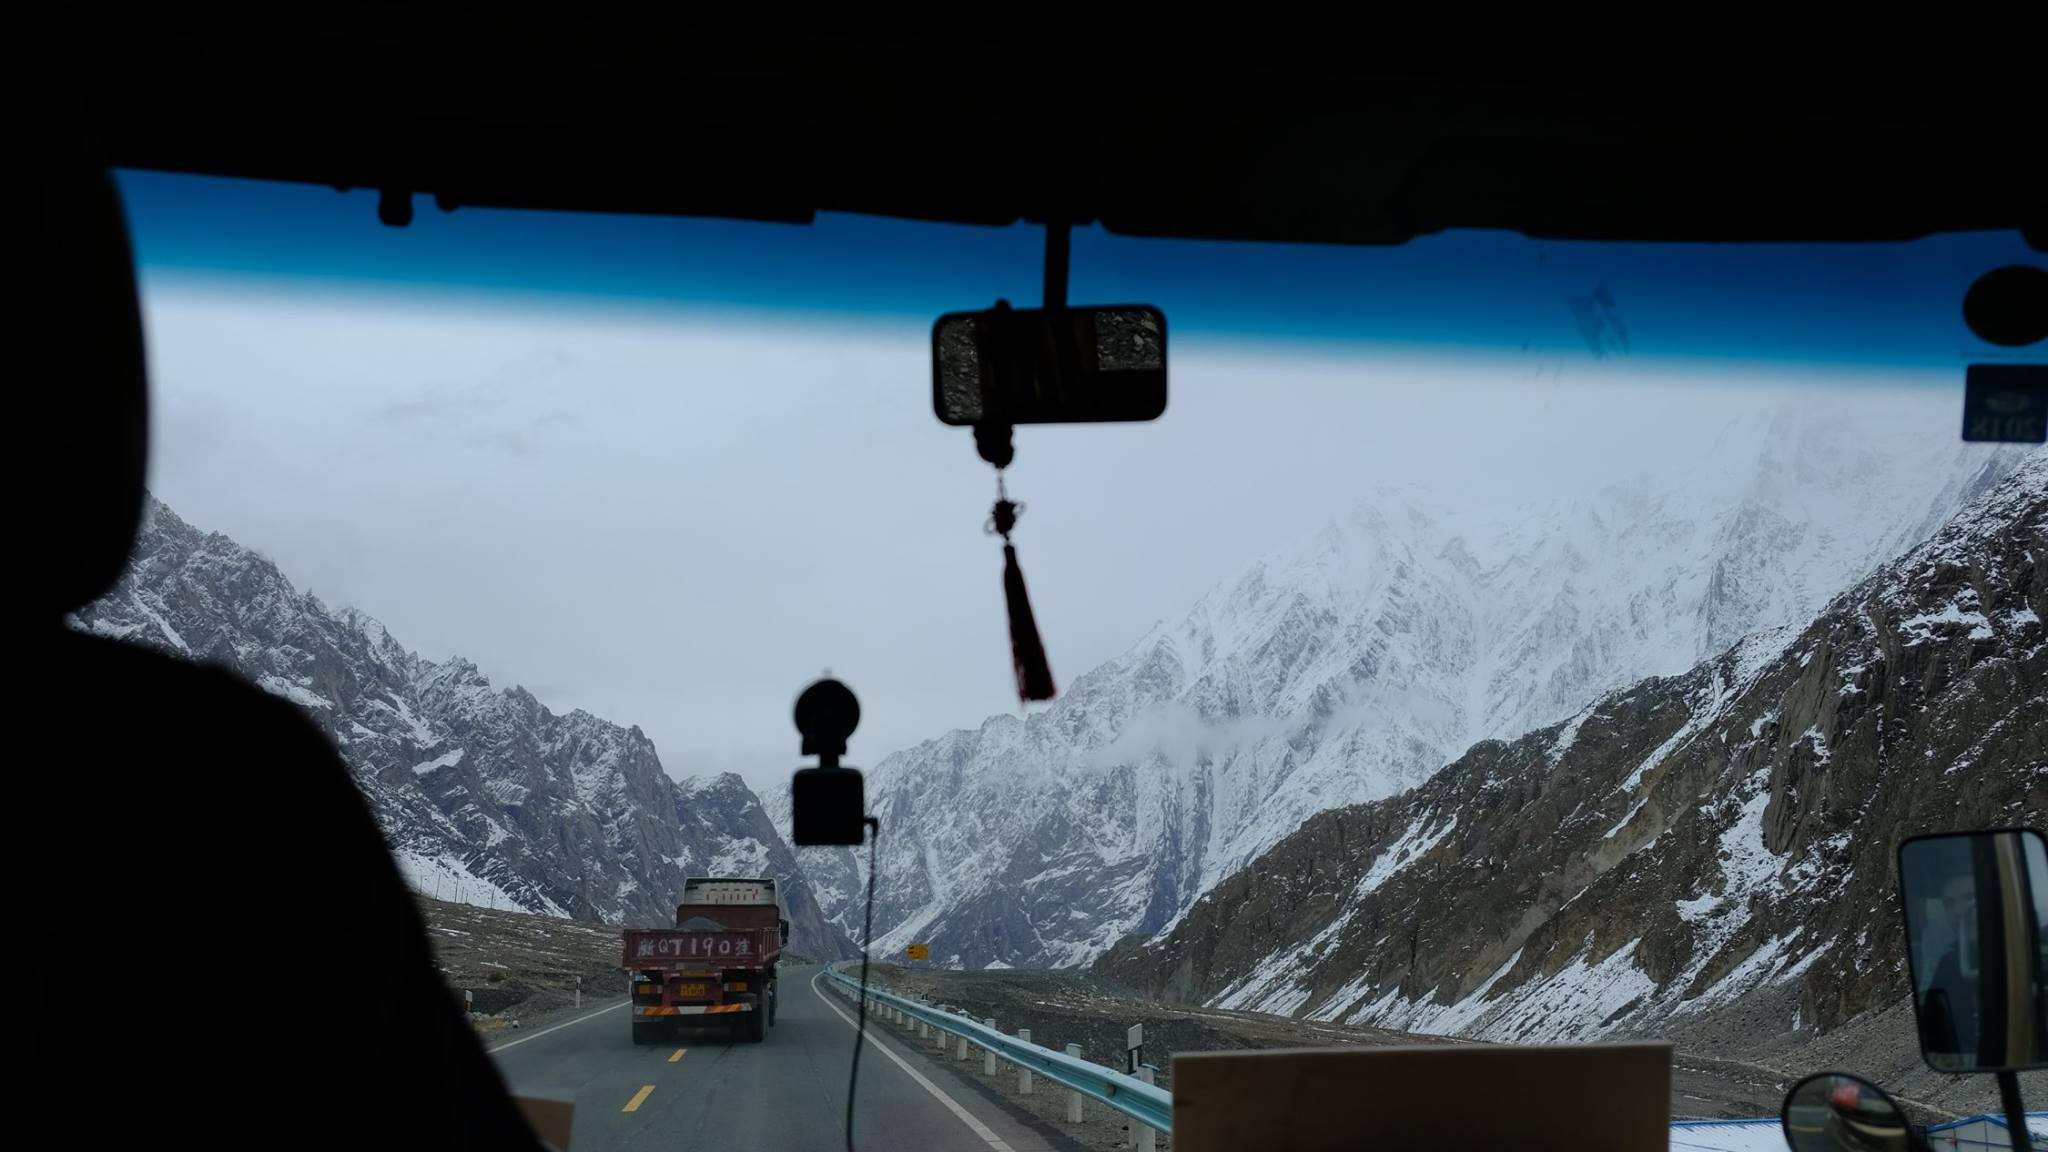 The view from a bus on Karakoram Highway heading towards Kashgar, a city in western Xinjiang (Image: Yiming Zhao)